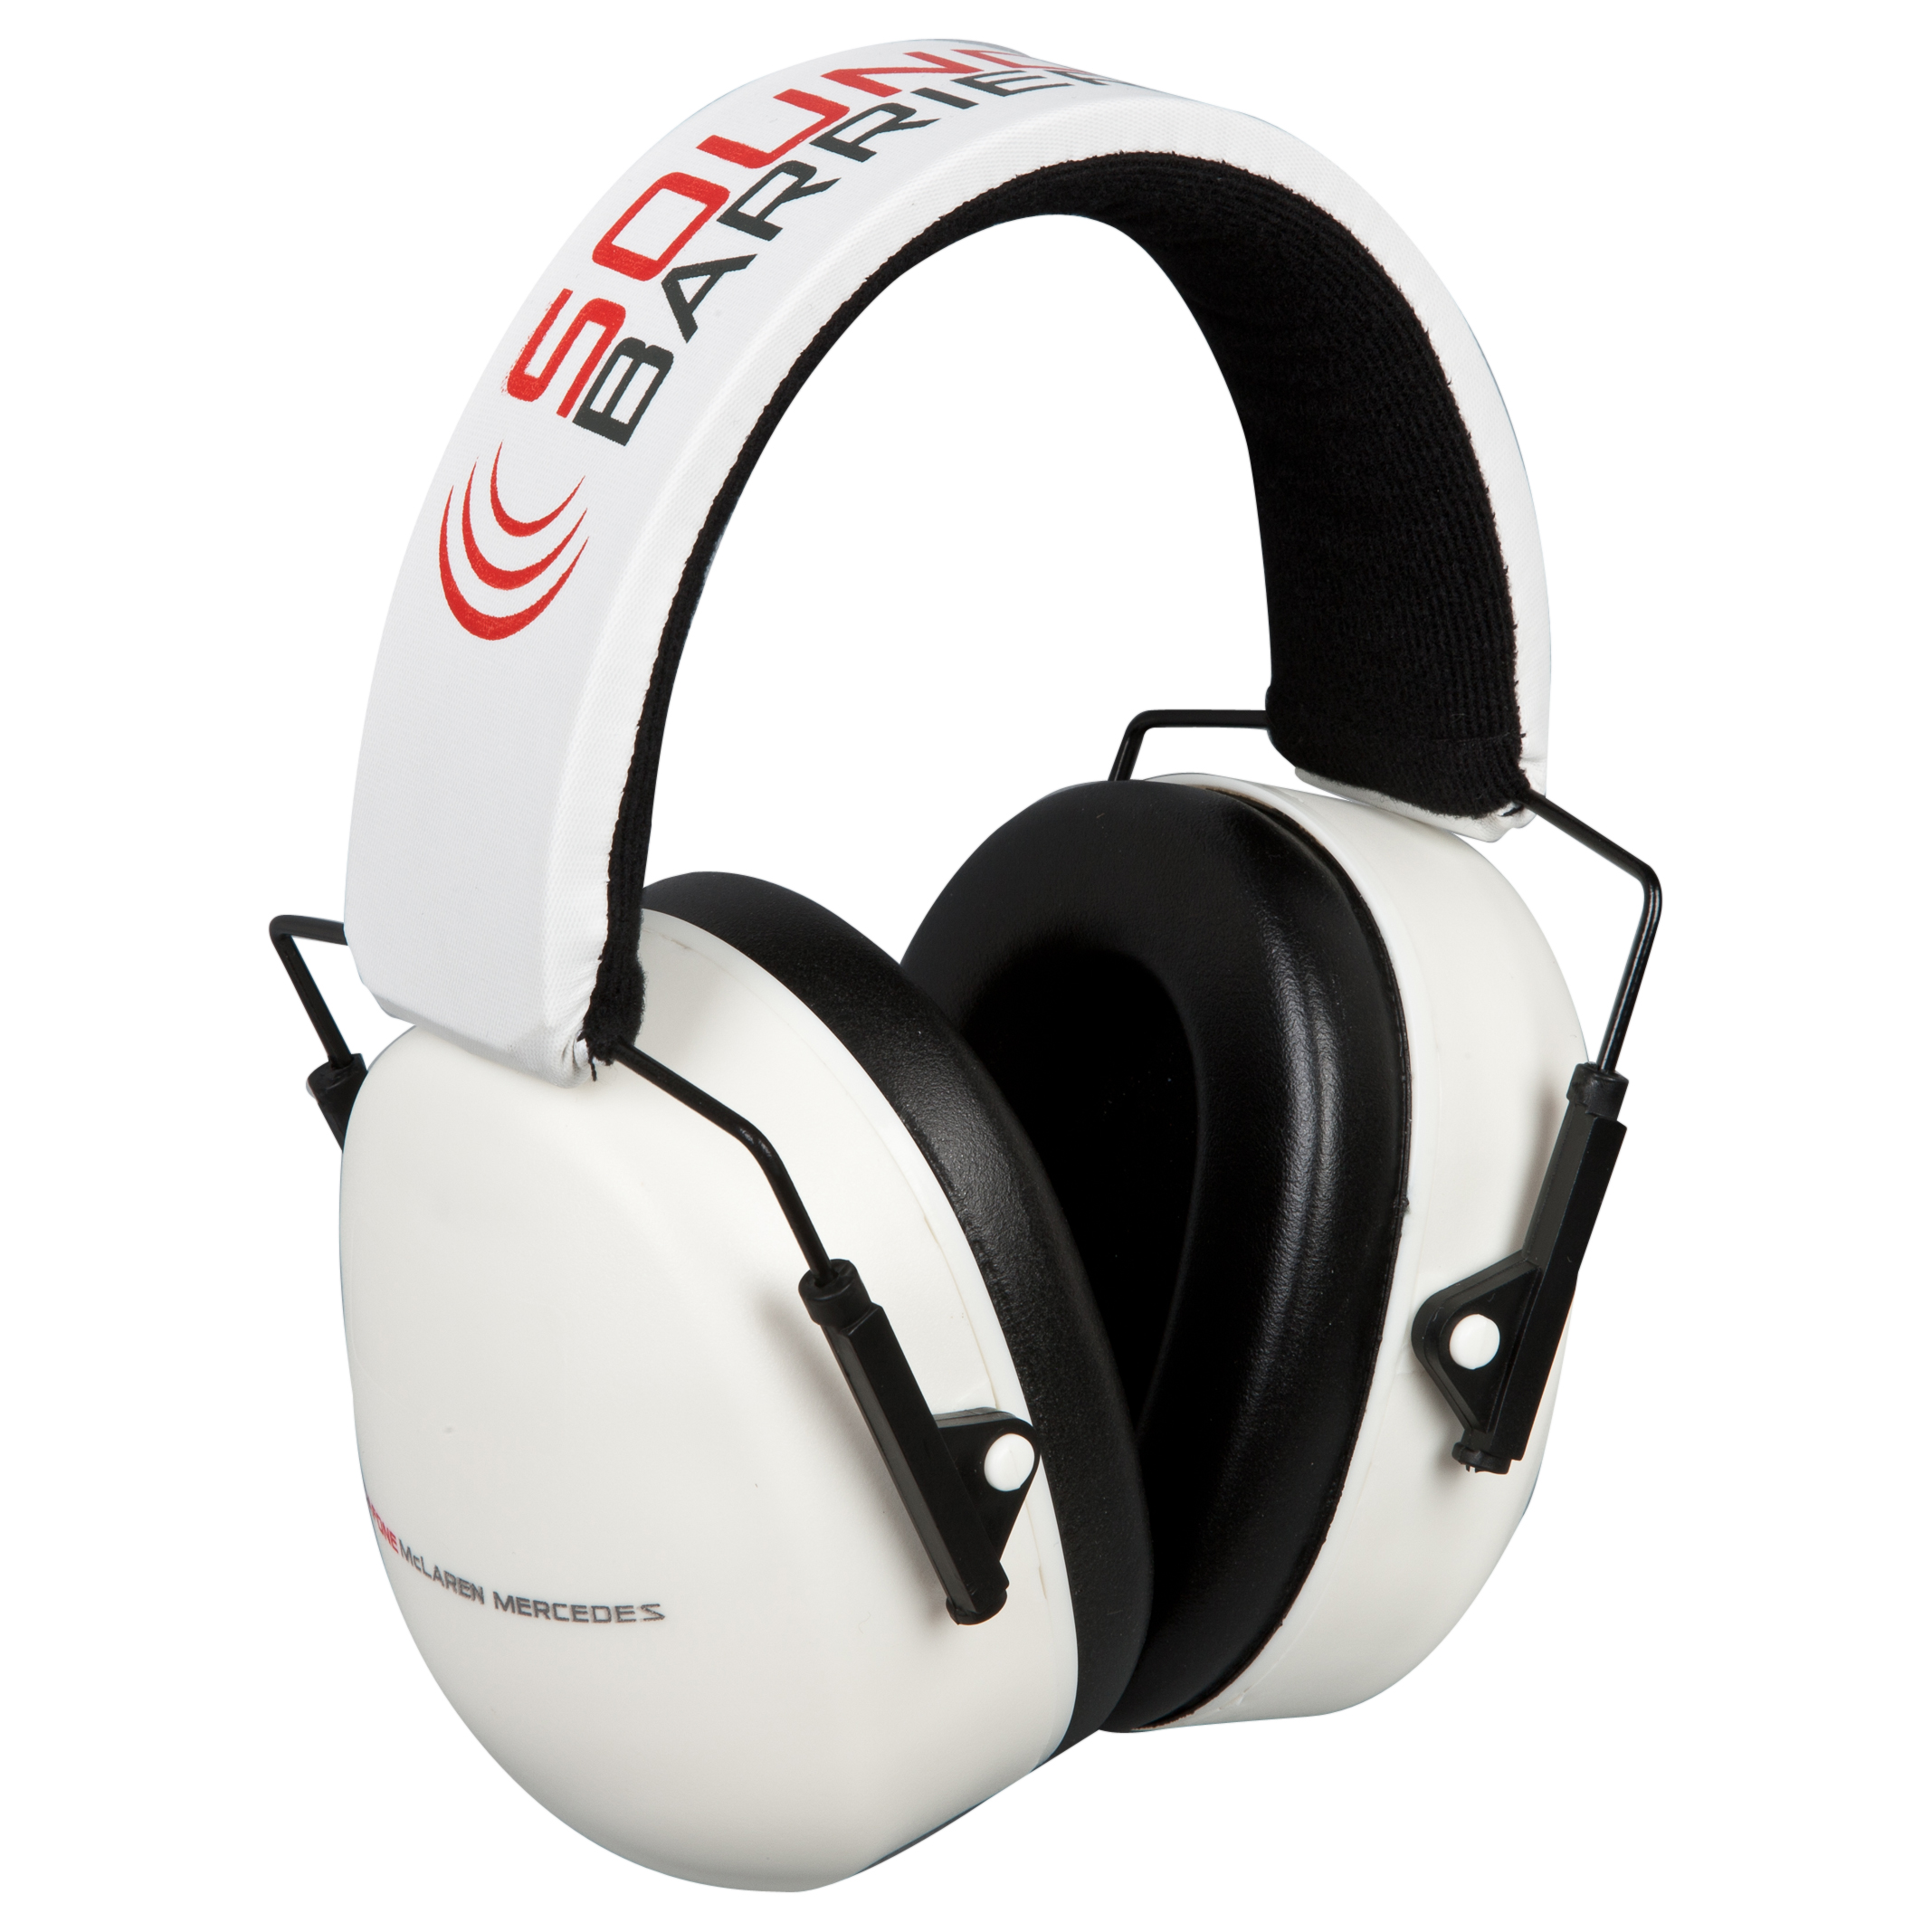 Vodafone McLaren Mercedes Ear Defenders